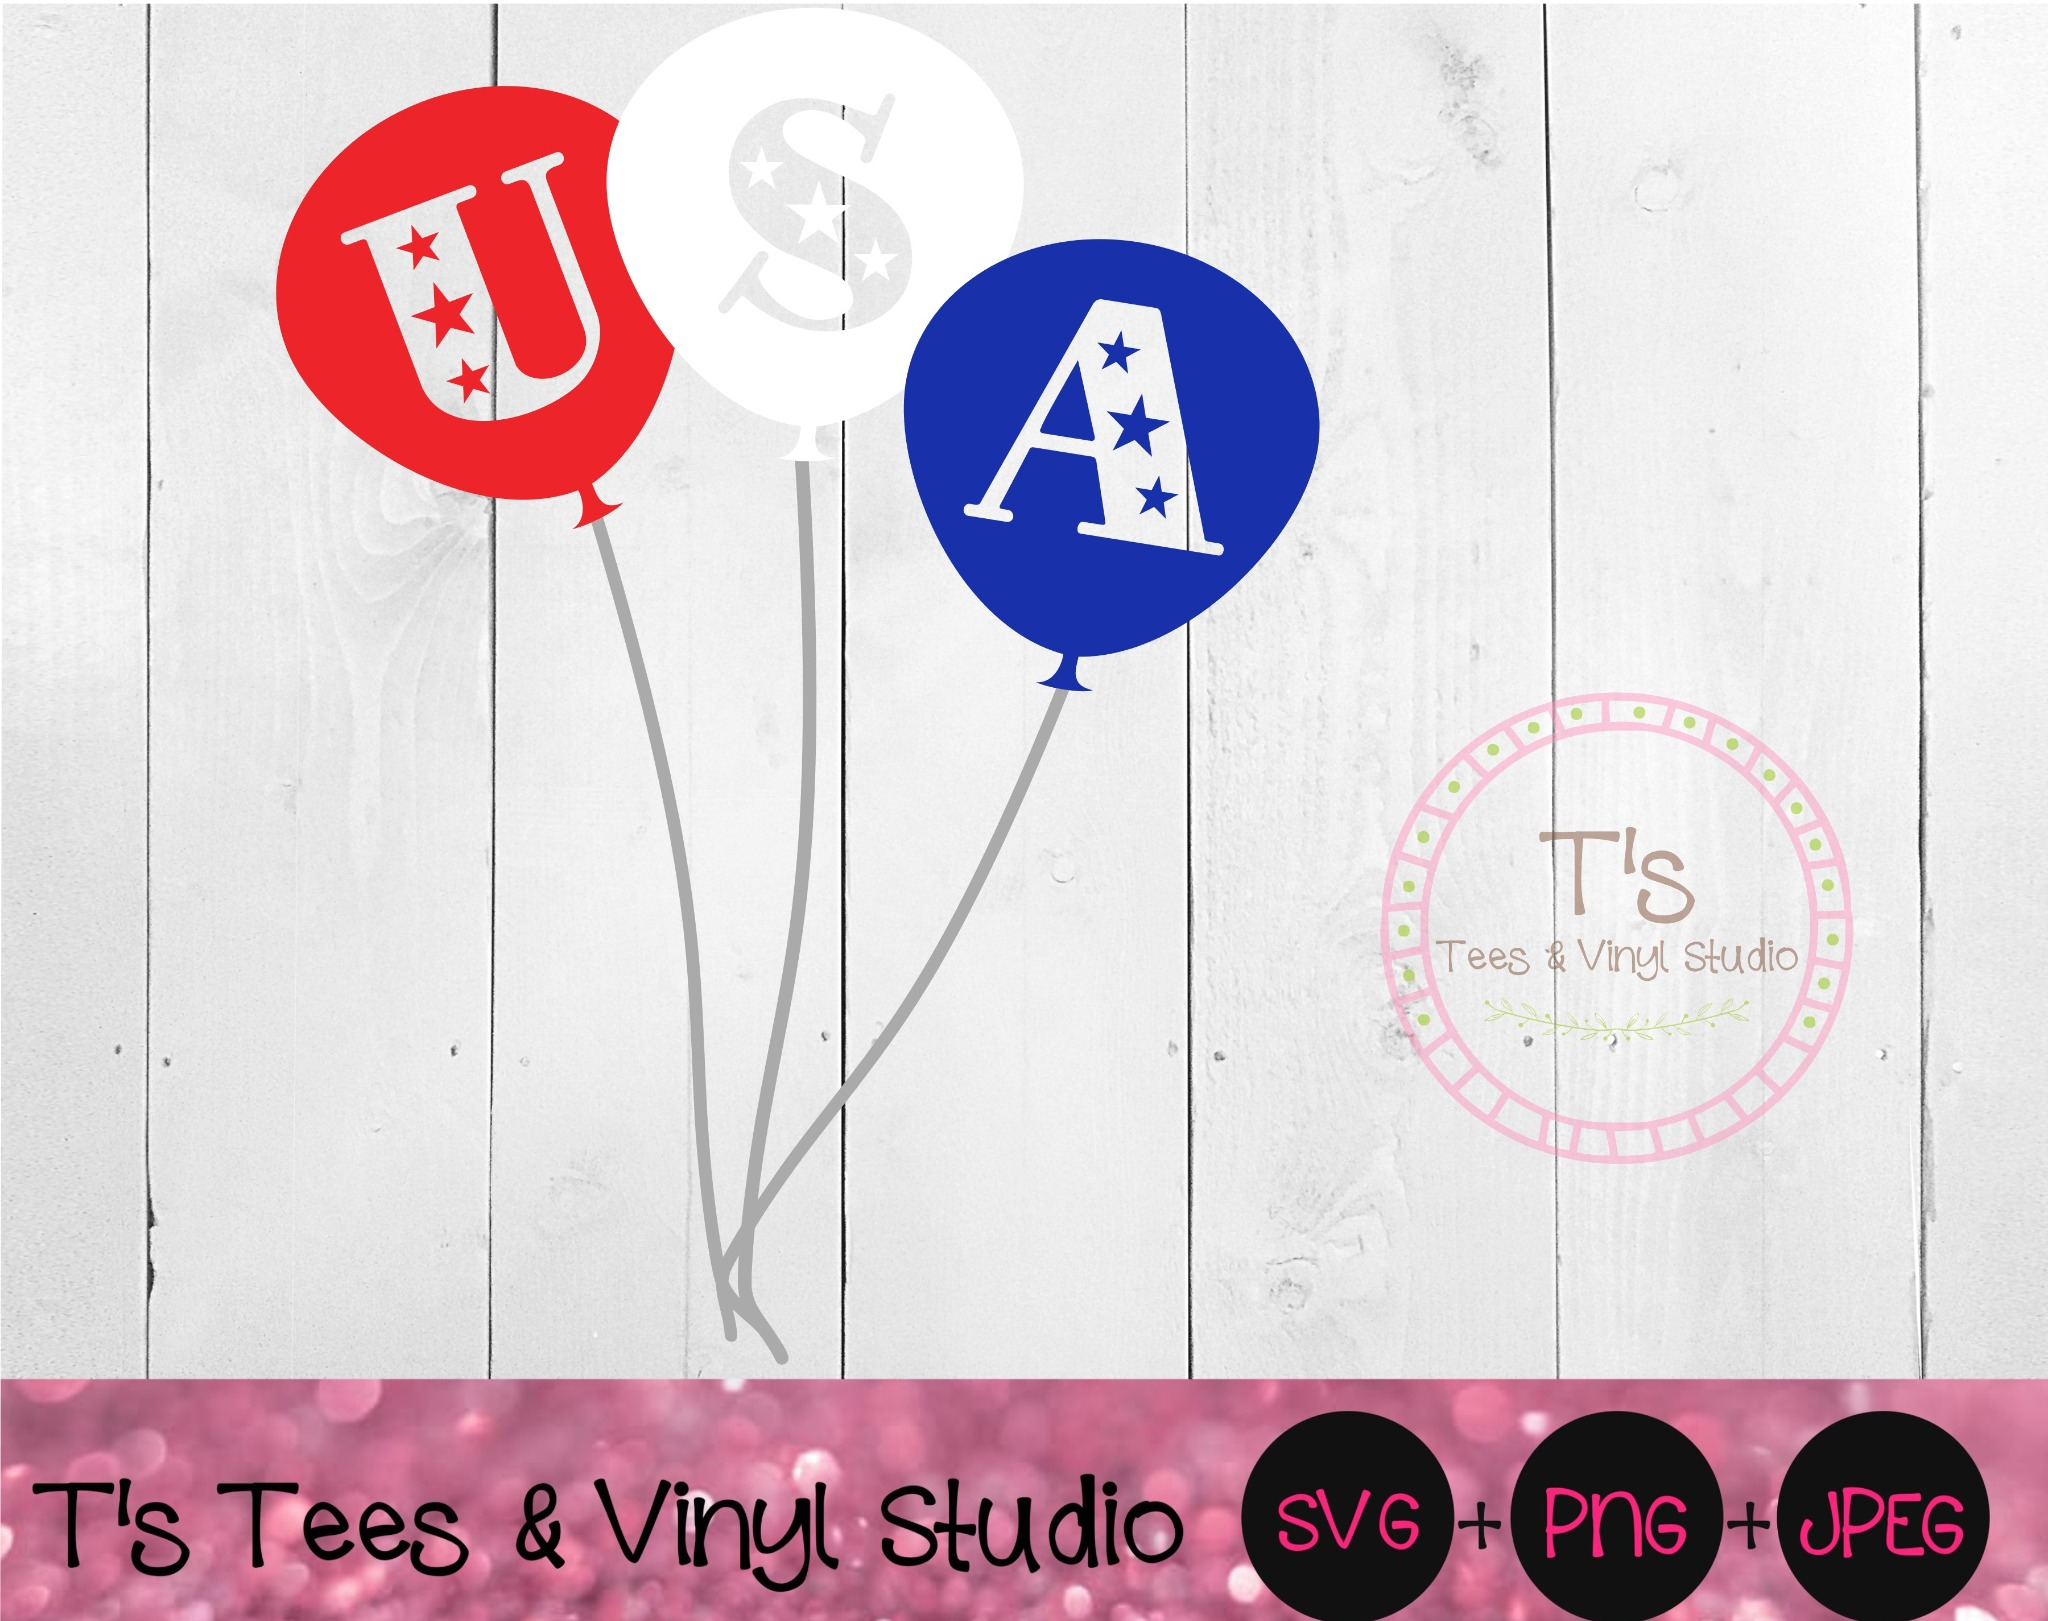 USA Svg, America, Americana, Balloons, Red White and Blue, Independence Day, Stars, 4th Of July, Ame